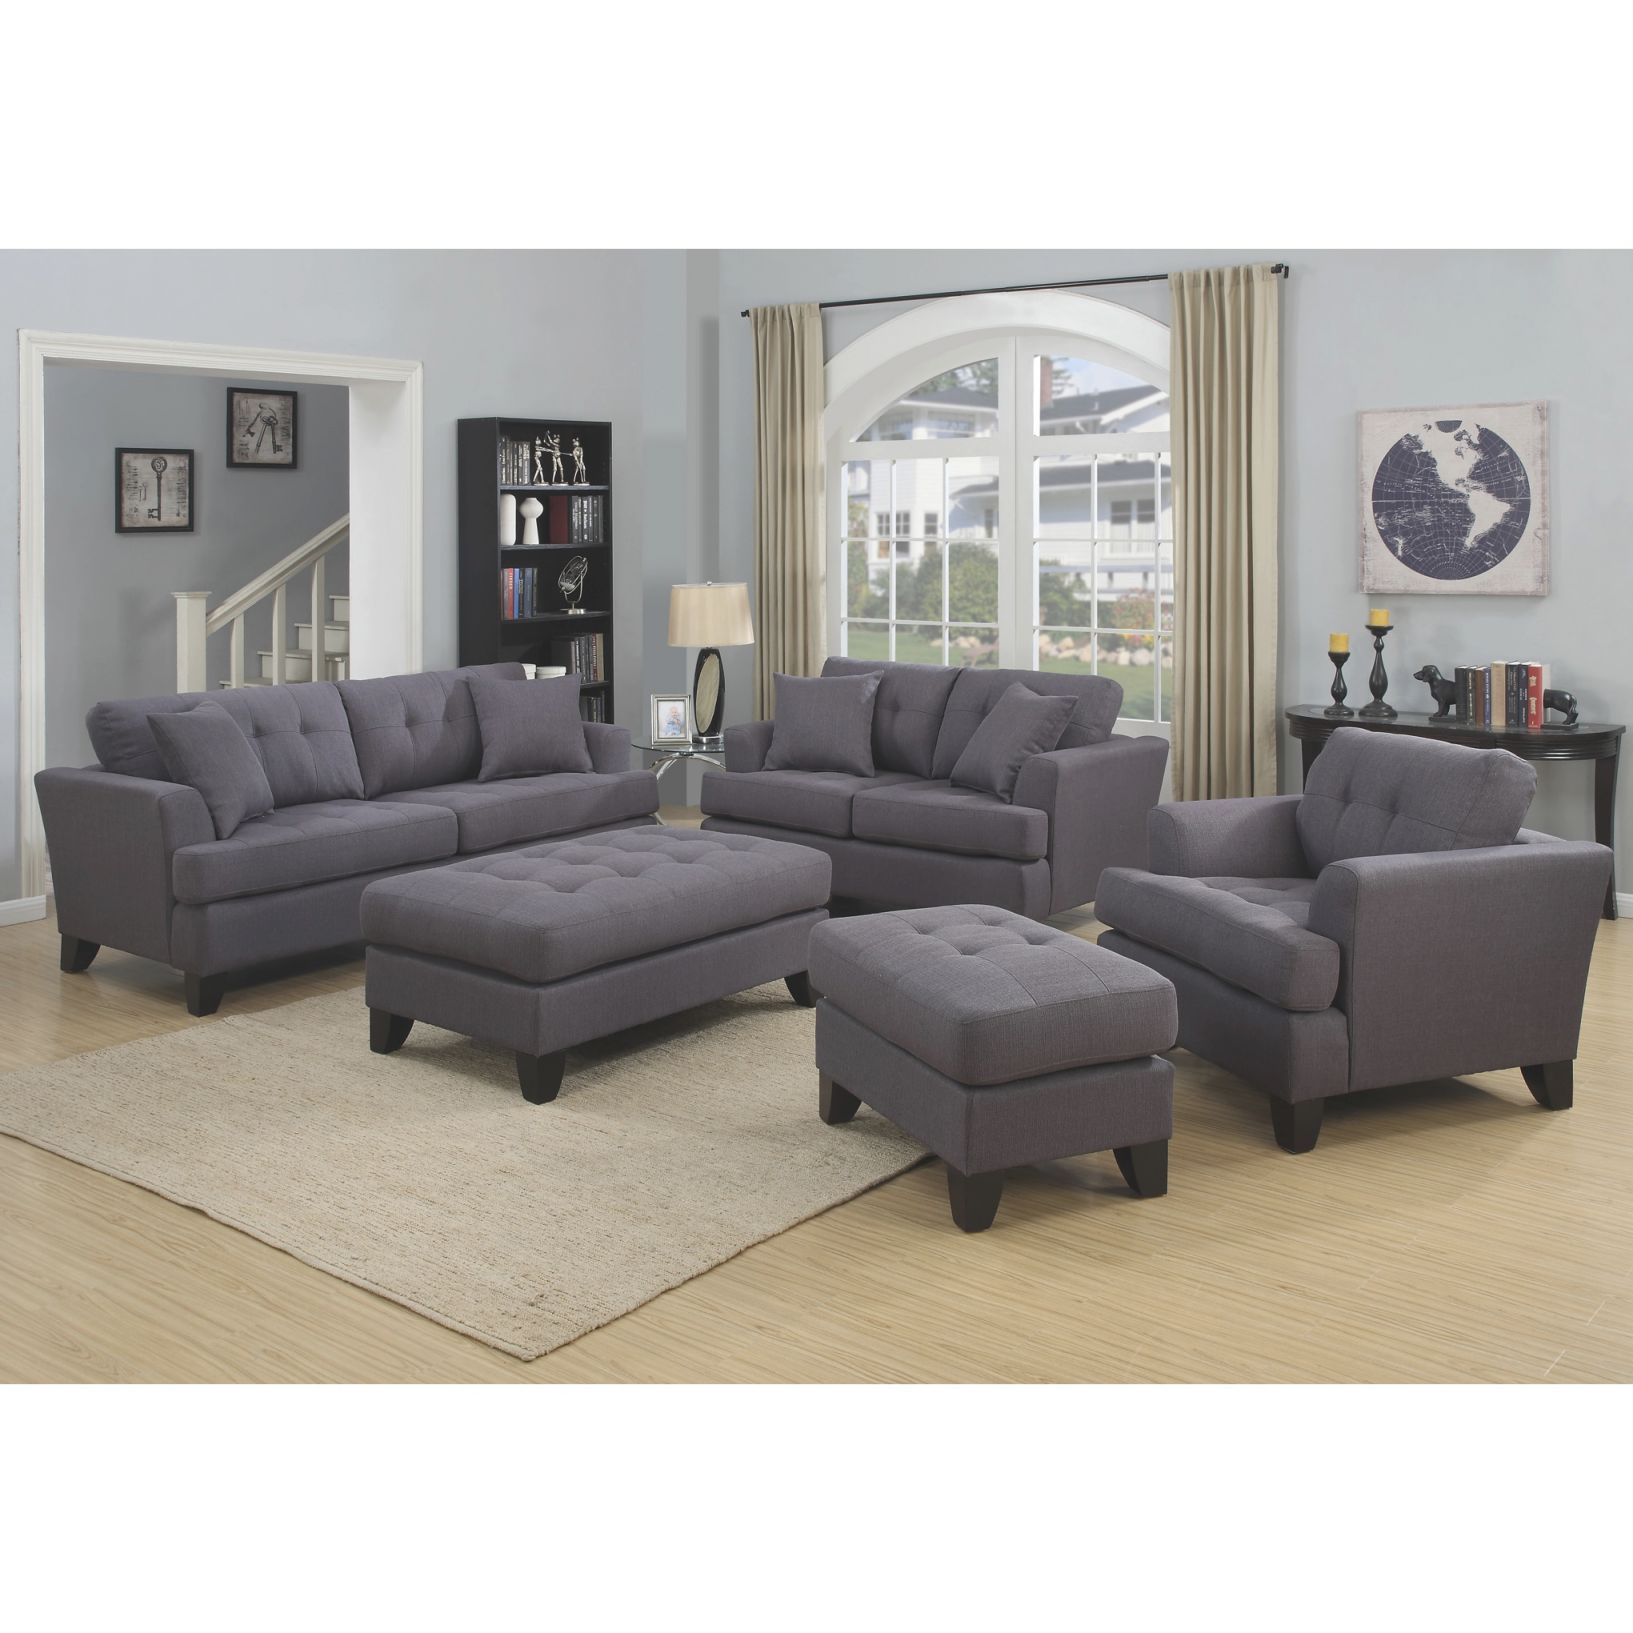 "Porter Norwich Charcoal Grey Living Room Set With 4 Throw Pillows - 37""h X 41""d X 187""w throughout Grey Living Room Furniture Set"